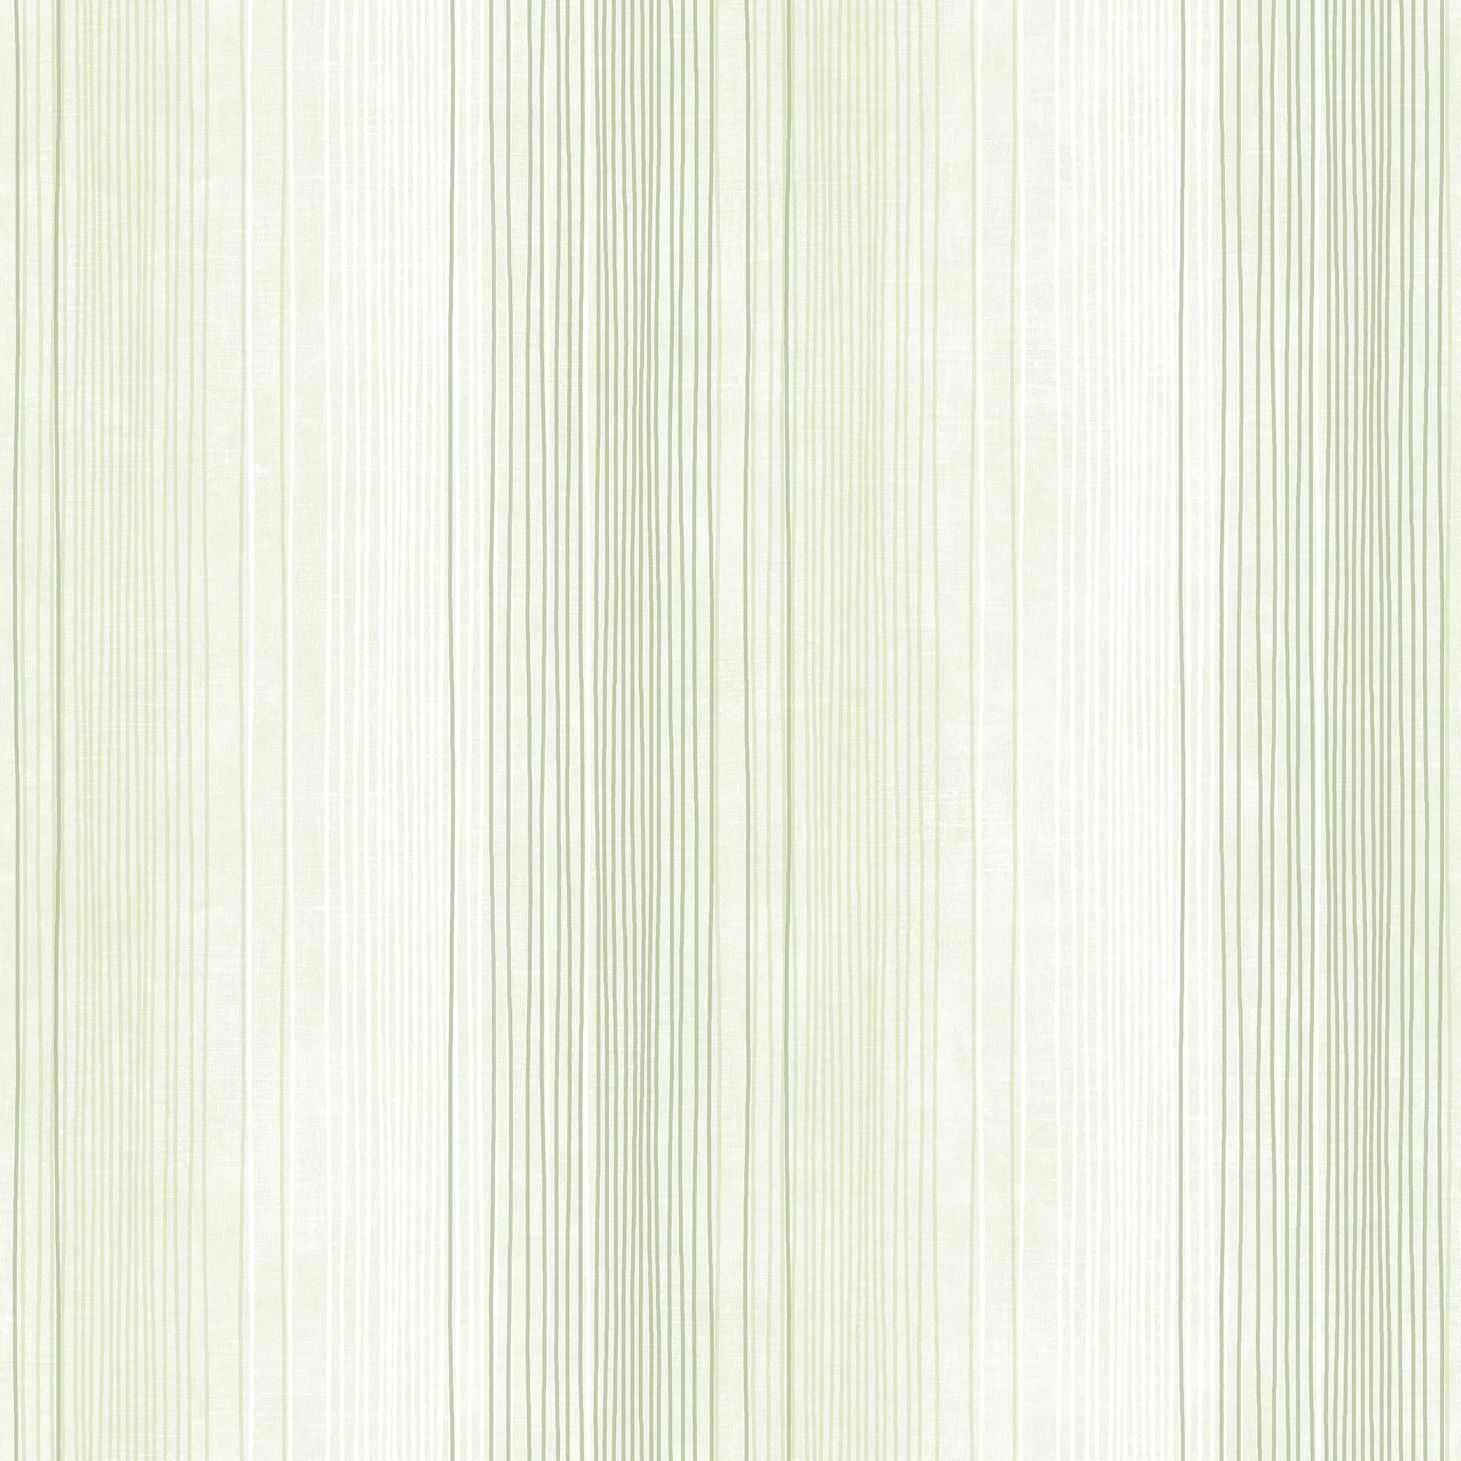 Essener Tapete Simply Stripes 3 St36924 green Lime Strisce Righe Tappezzeria in